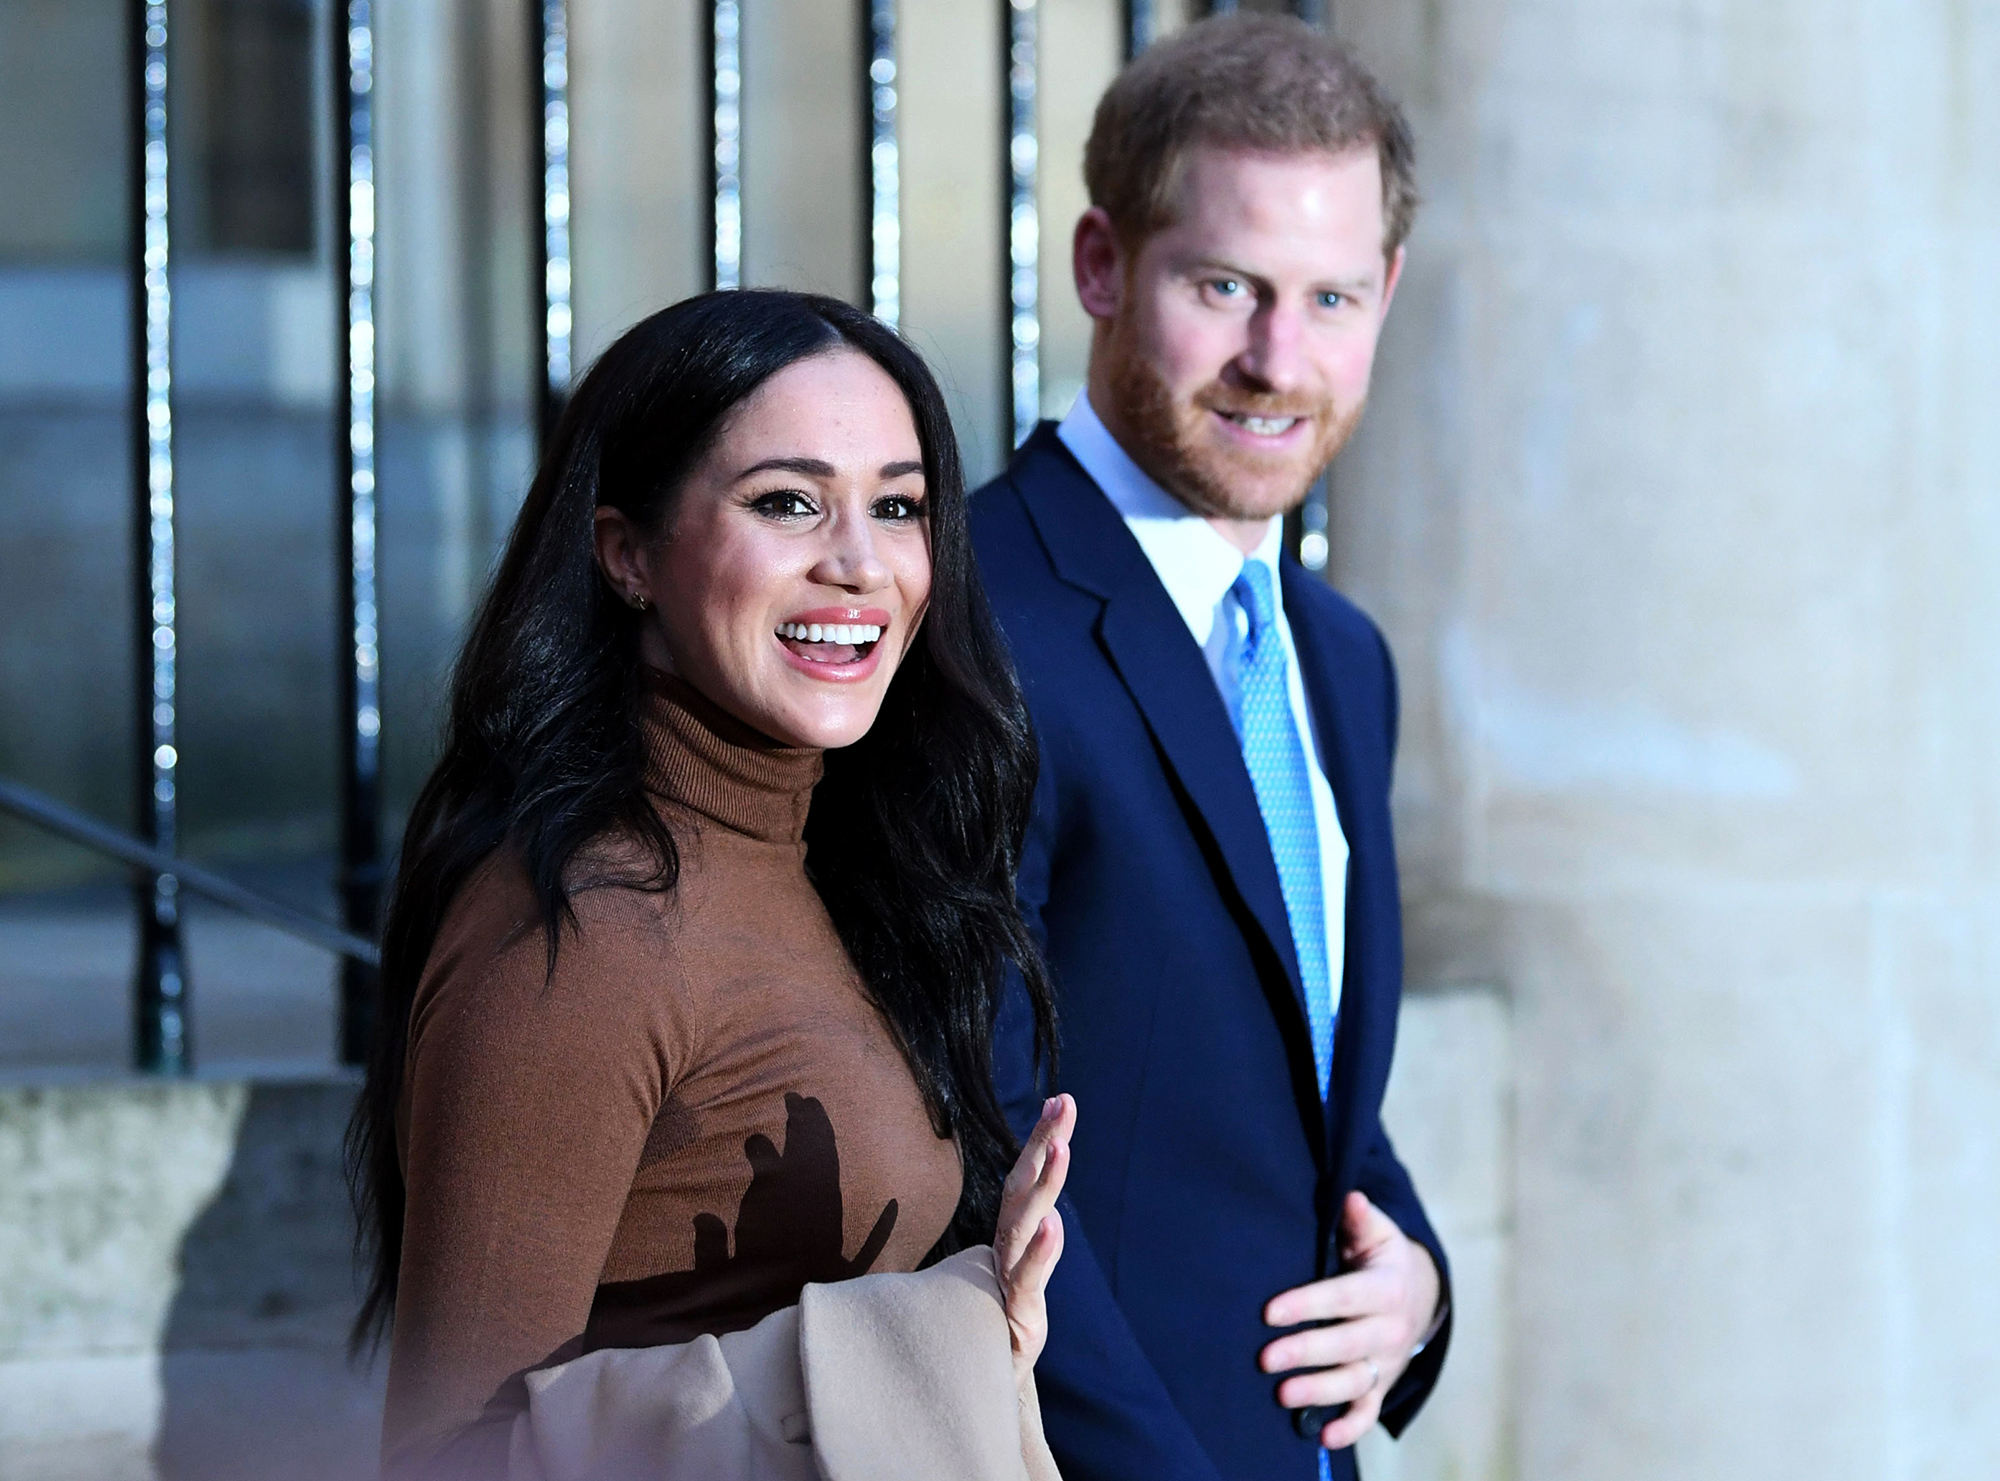 Prince Harry drops his royal surname in United States paperwork